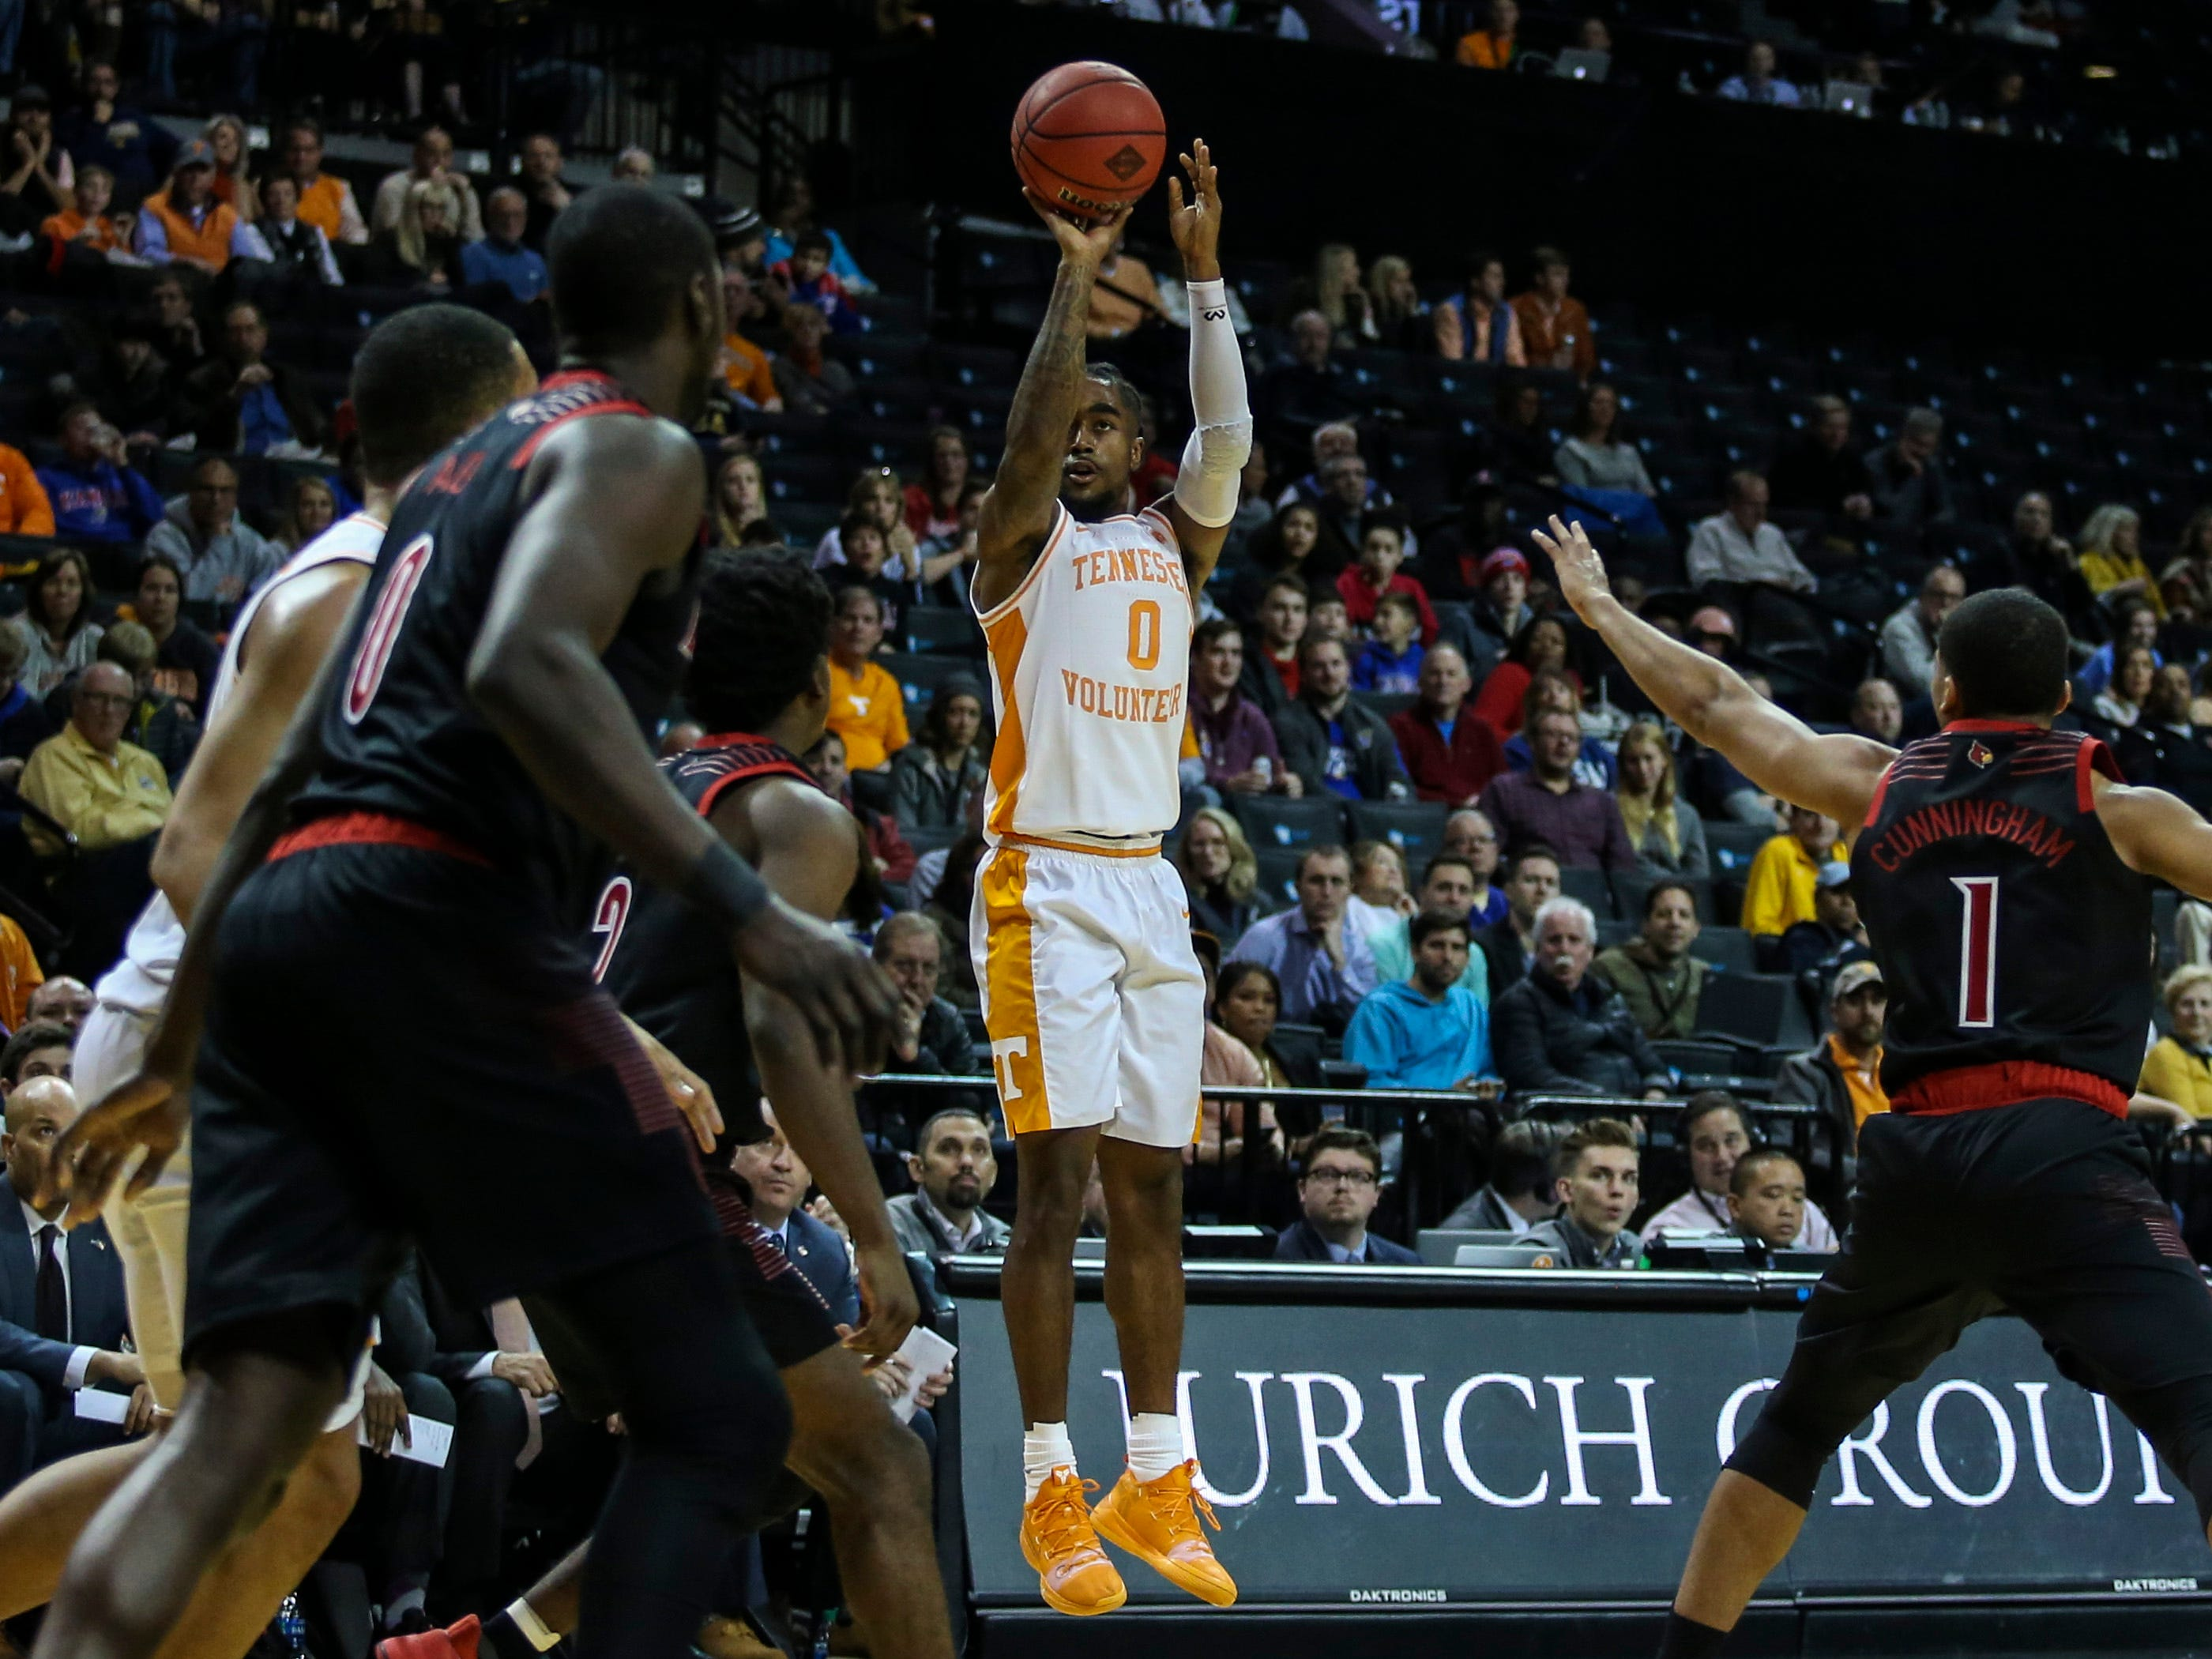 Nov 21, 2018; Brooklyn, NY, USA; Tennessee Volunteers guard Jordan Bone (0) takes a three point shot in the second half during the NIT Tipoff at Barclays Center. Mandatory Credit: Wendell Cruz-USA TODAY Sports